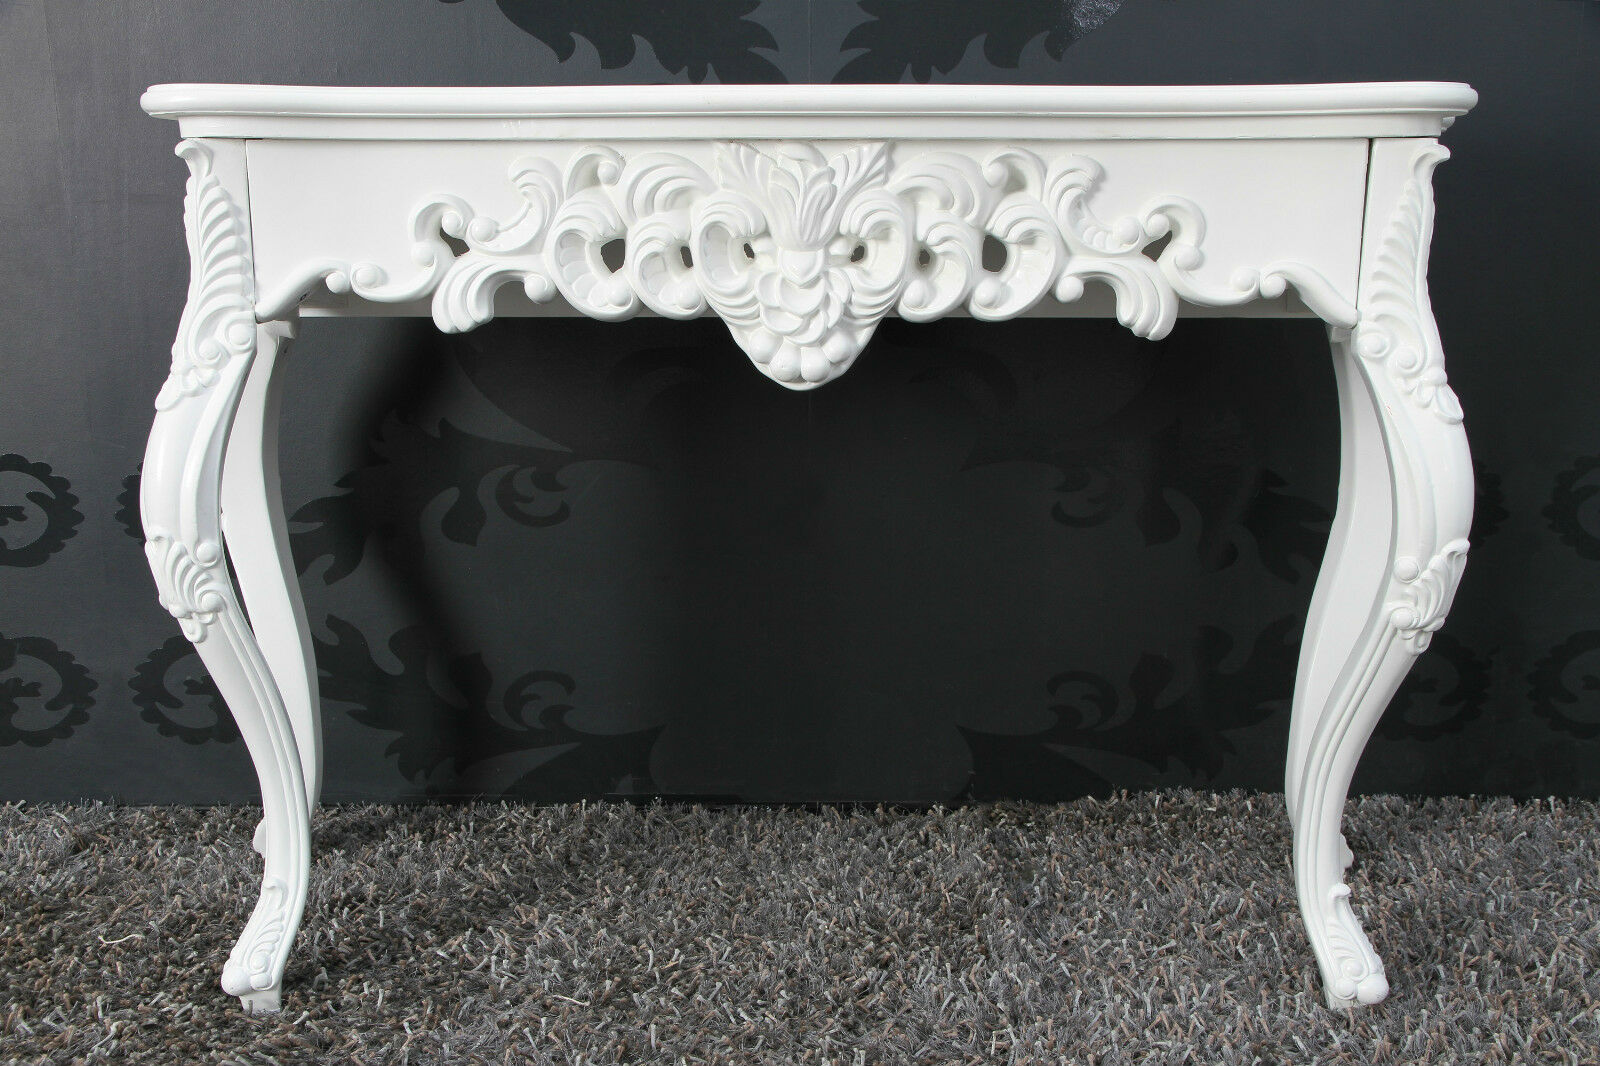 Console White Antique Finish Luxurious Luxuriant Sideboard Baroque Rococo Shelf 85cm Ebay